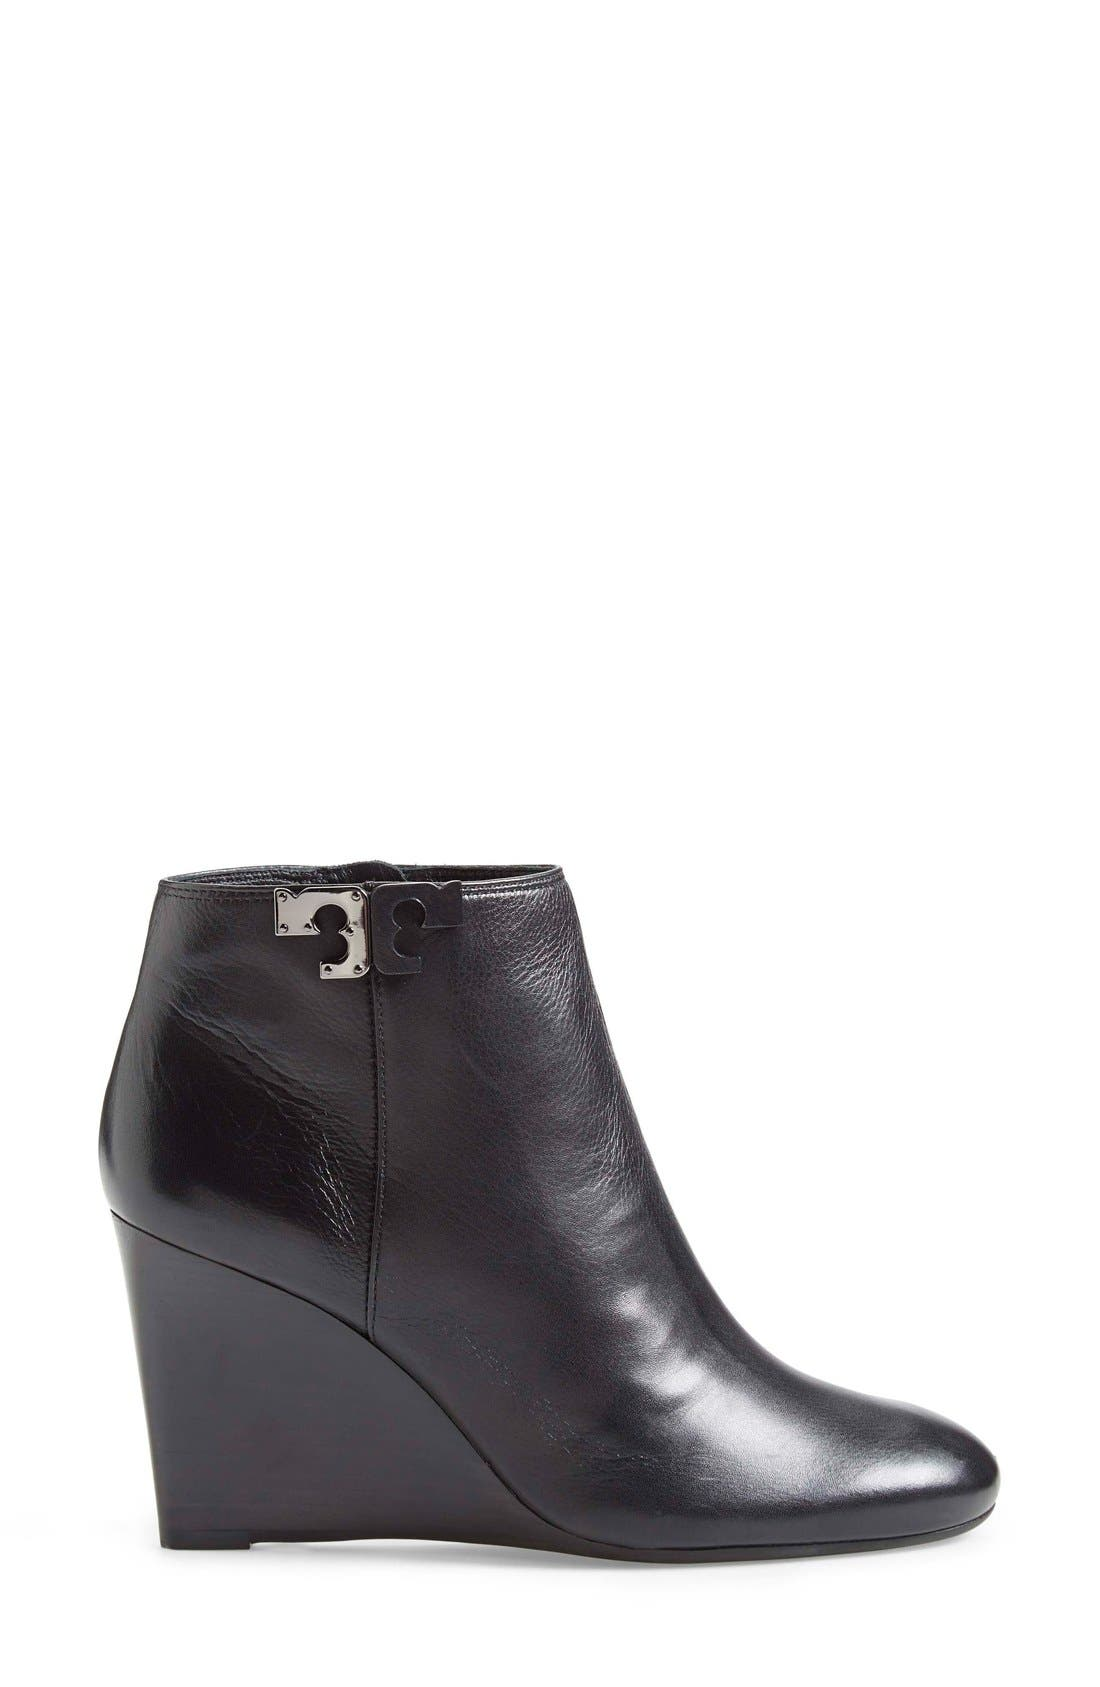 'Lowell' Wedge Bootie,                             Alternate thumbnail 3, color,                             001